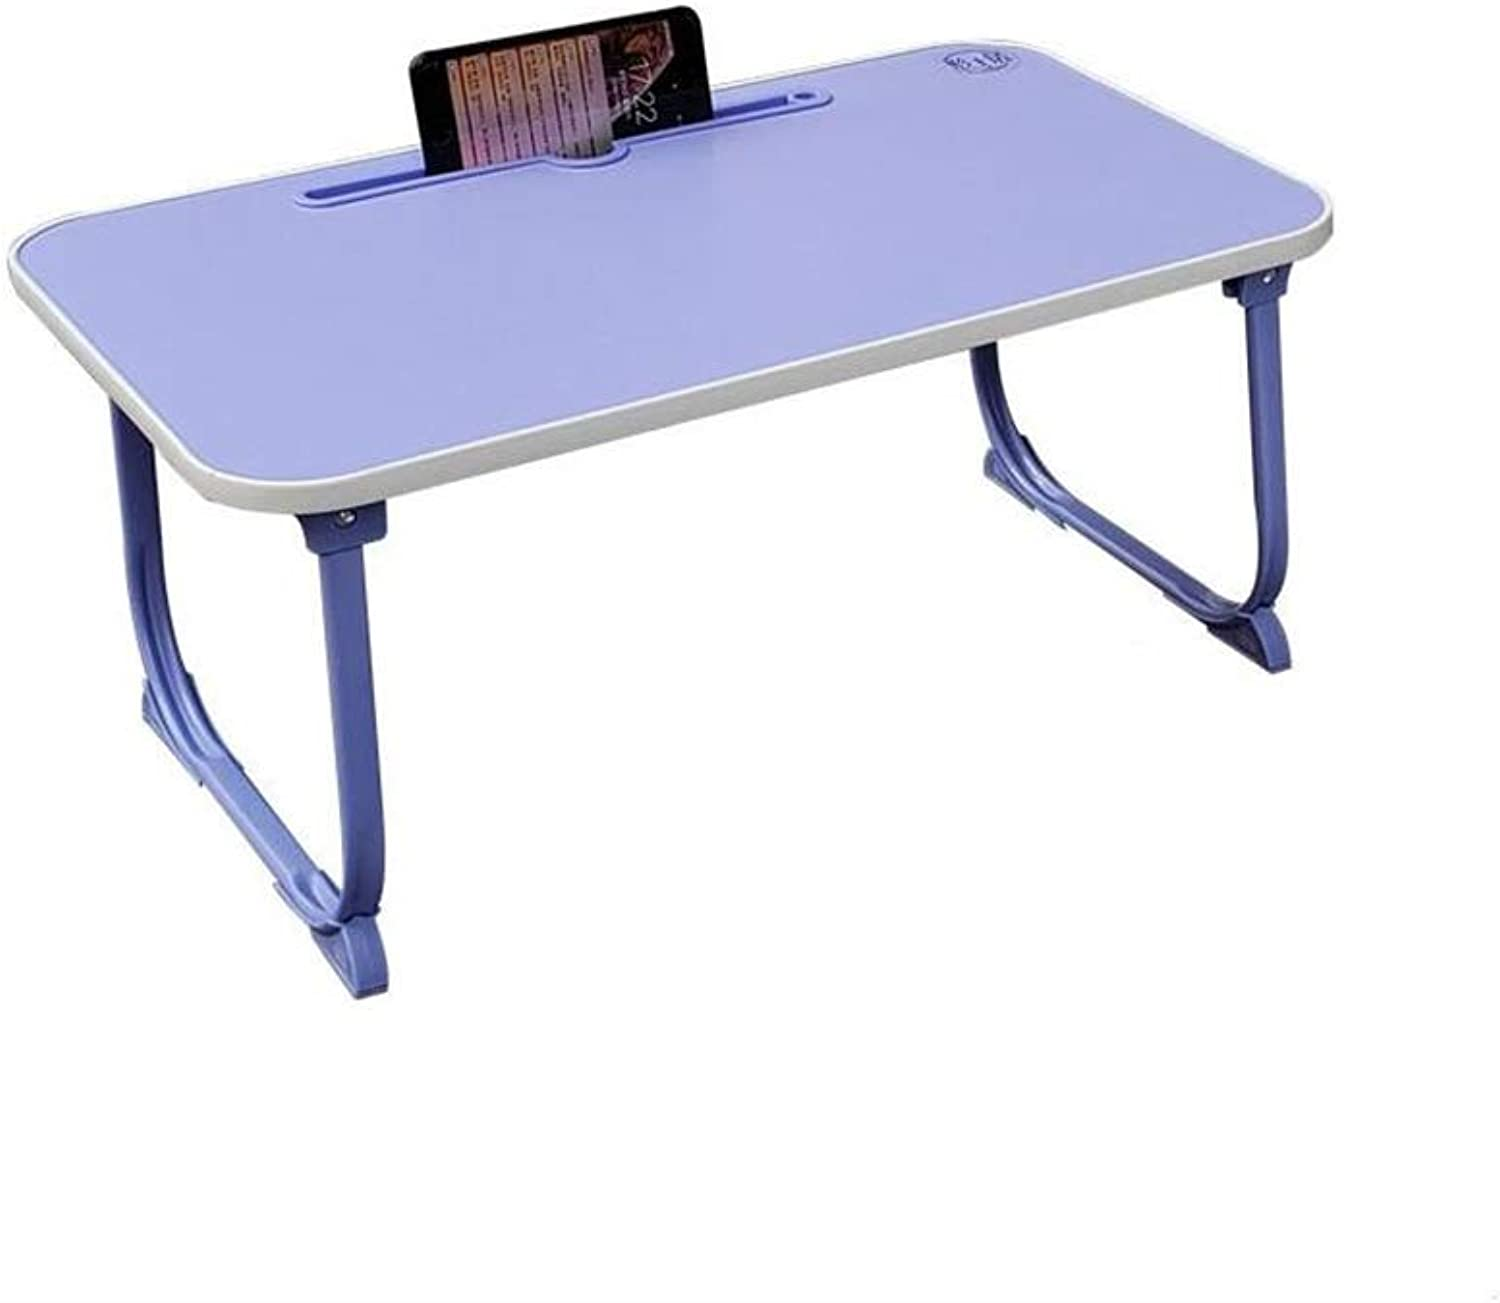 QIDI Folding Table Laptop for Bed Sofa Bedroom Office Breakfast Picnic colorful (color   Purple, Size   T-2)